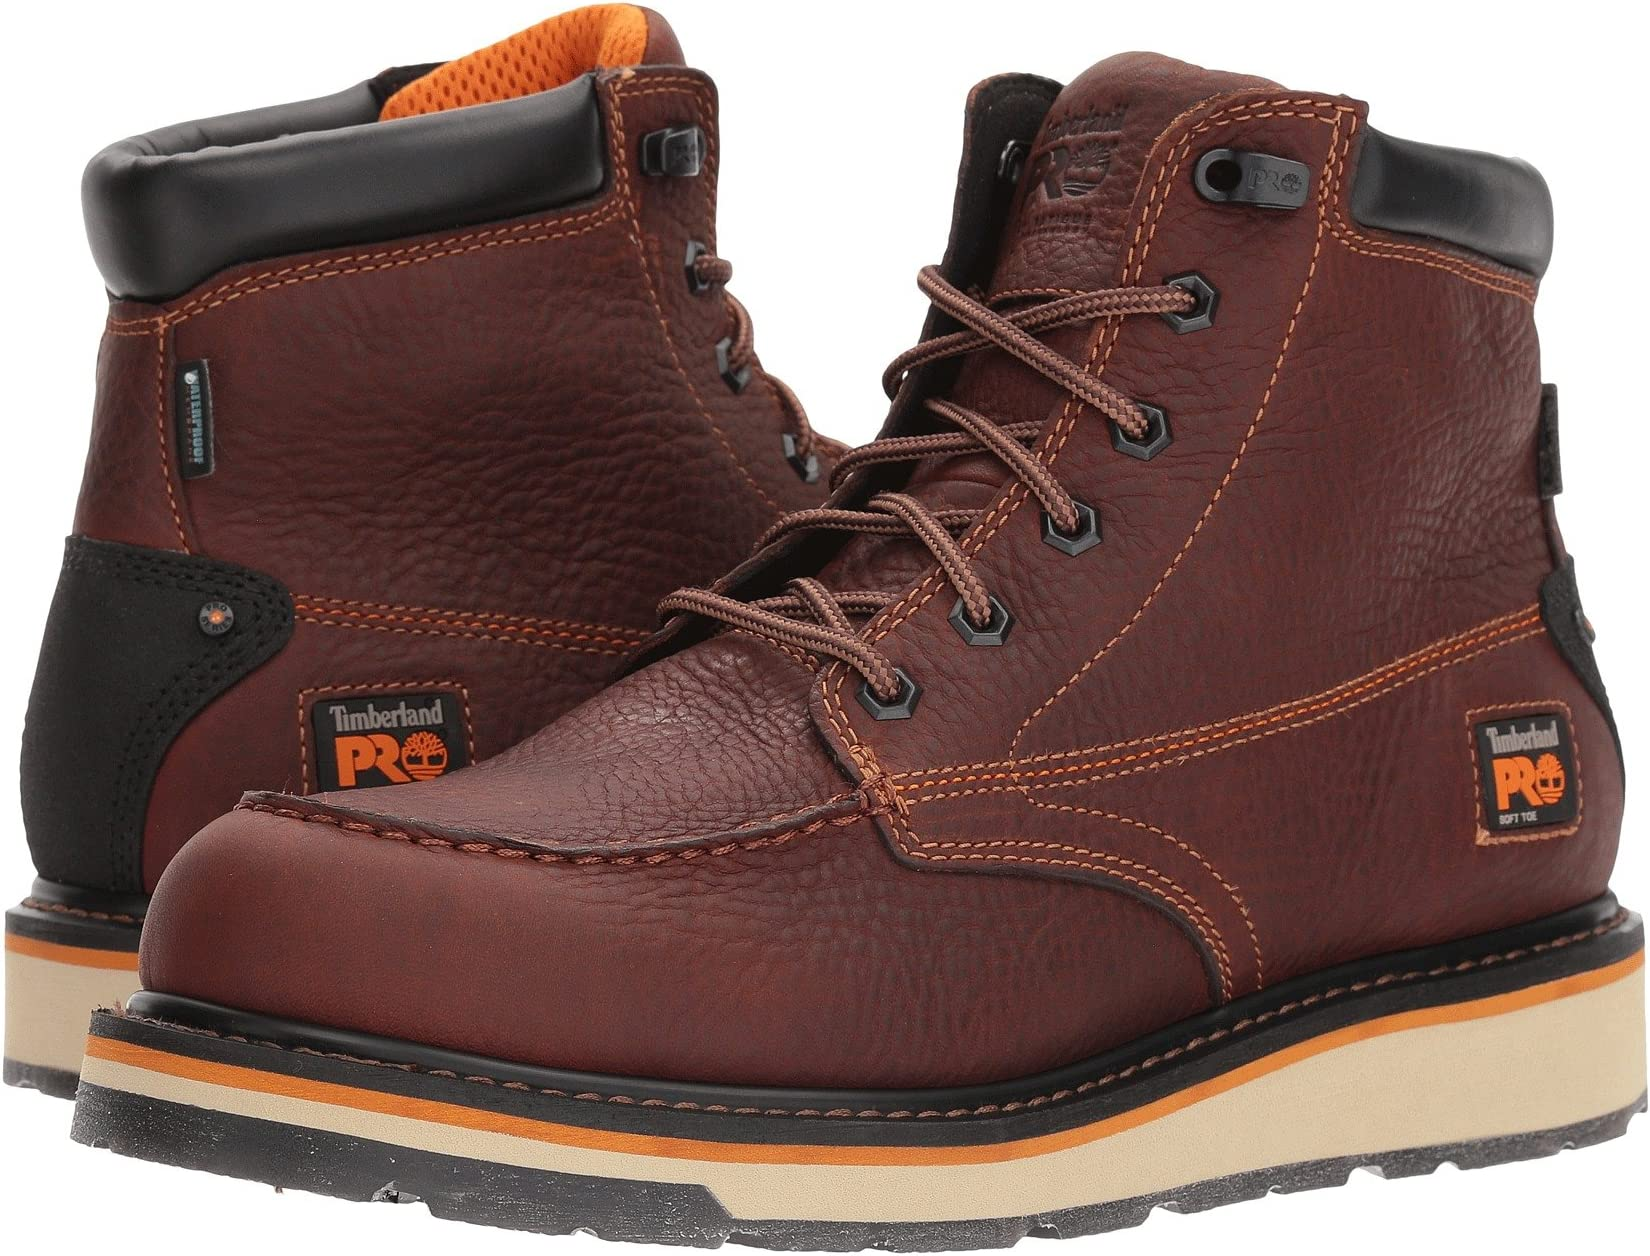 fbd0053c09 Timberland Boots & Shoes | Shipped FREE at Zappos | Zappos.com